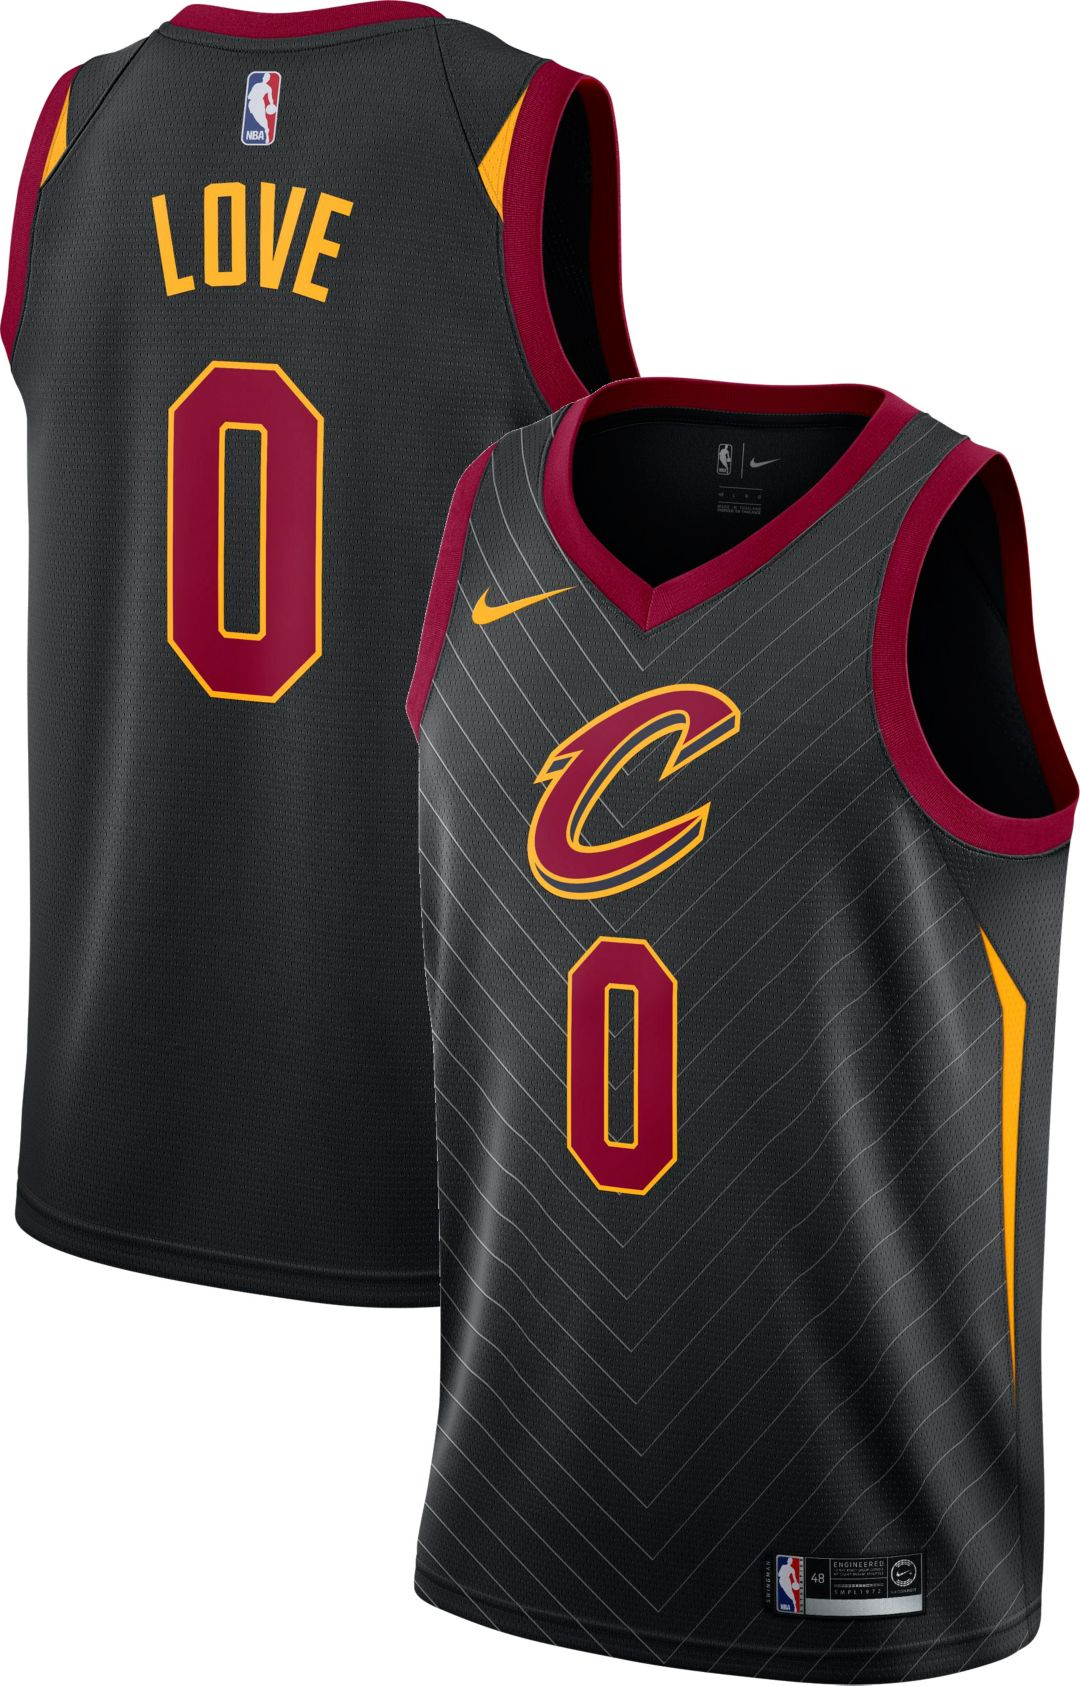 11eaa7a26 Nike Men's Cleveland Cavaliers Kevin Love #0 Black Dri-FIT Swingman ...